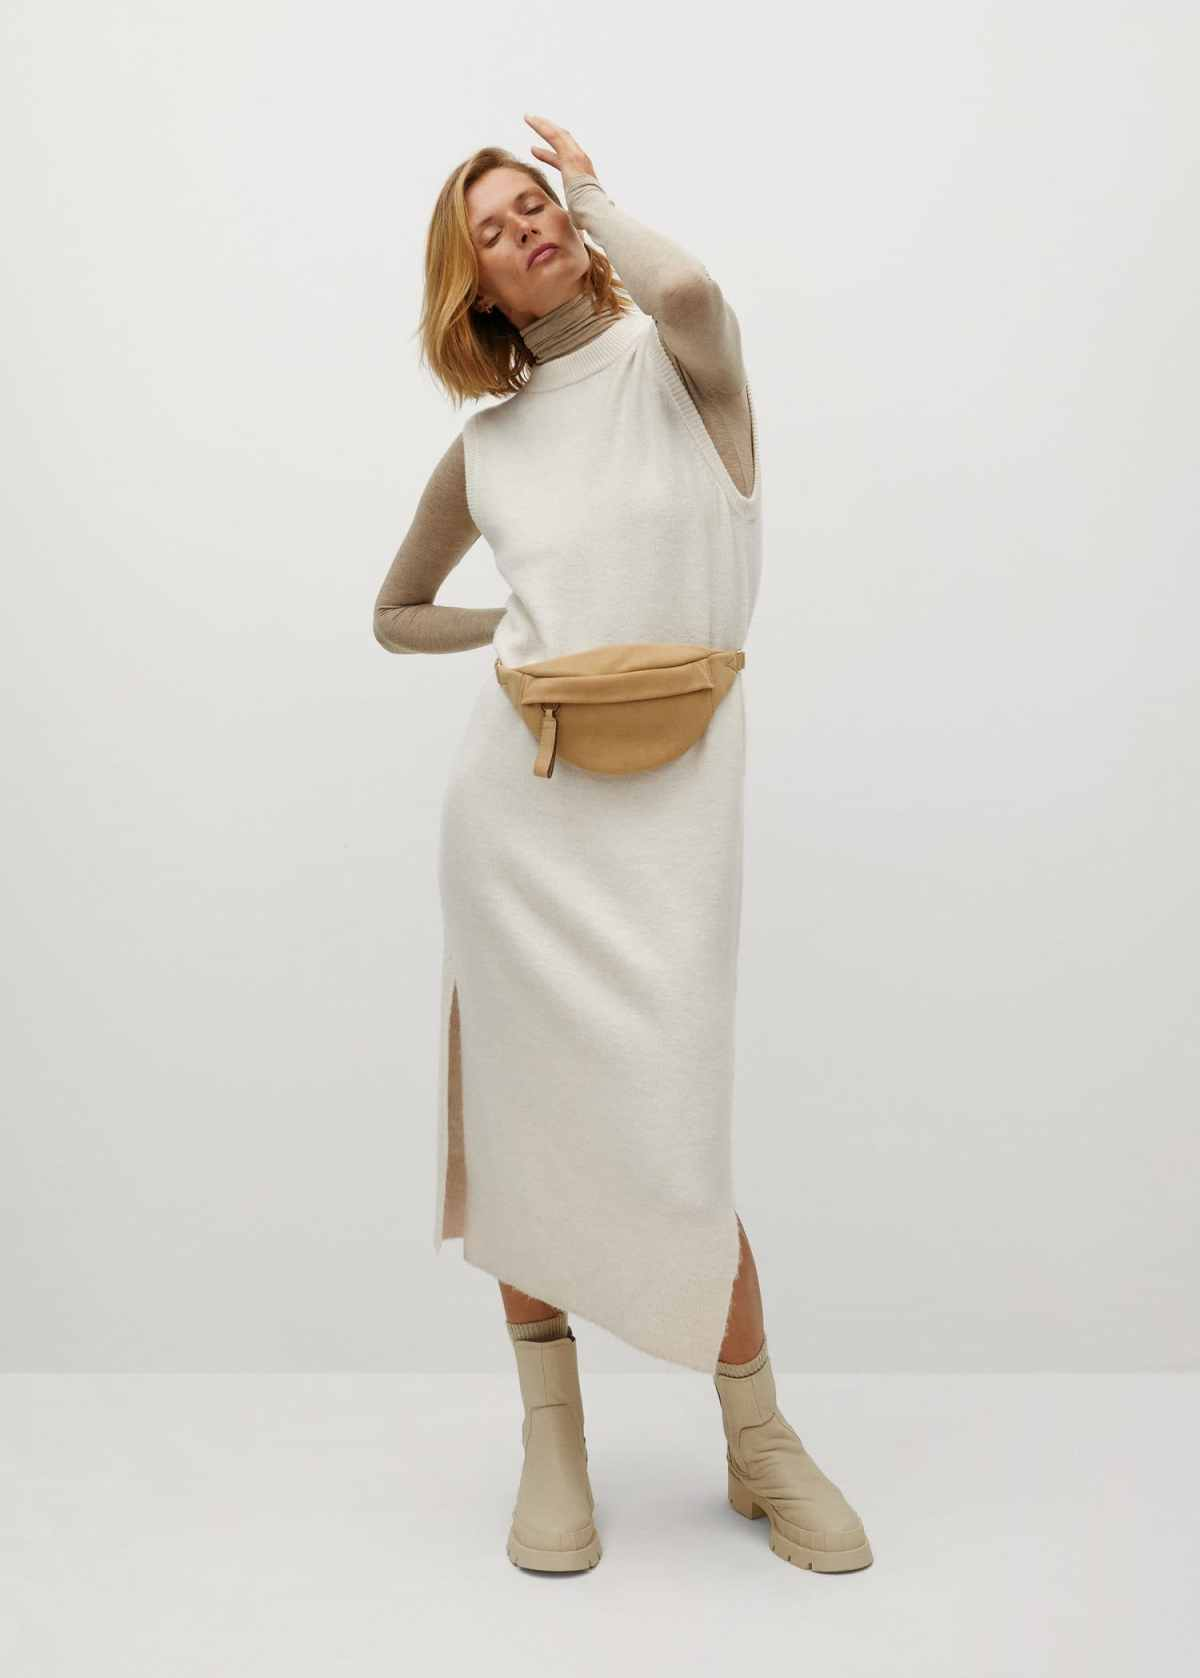 Fine knitted dress - General plane